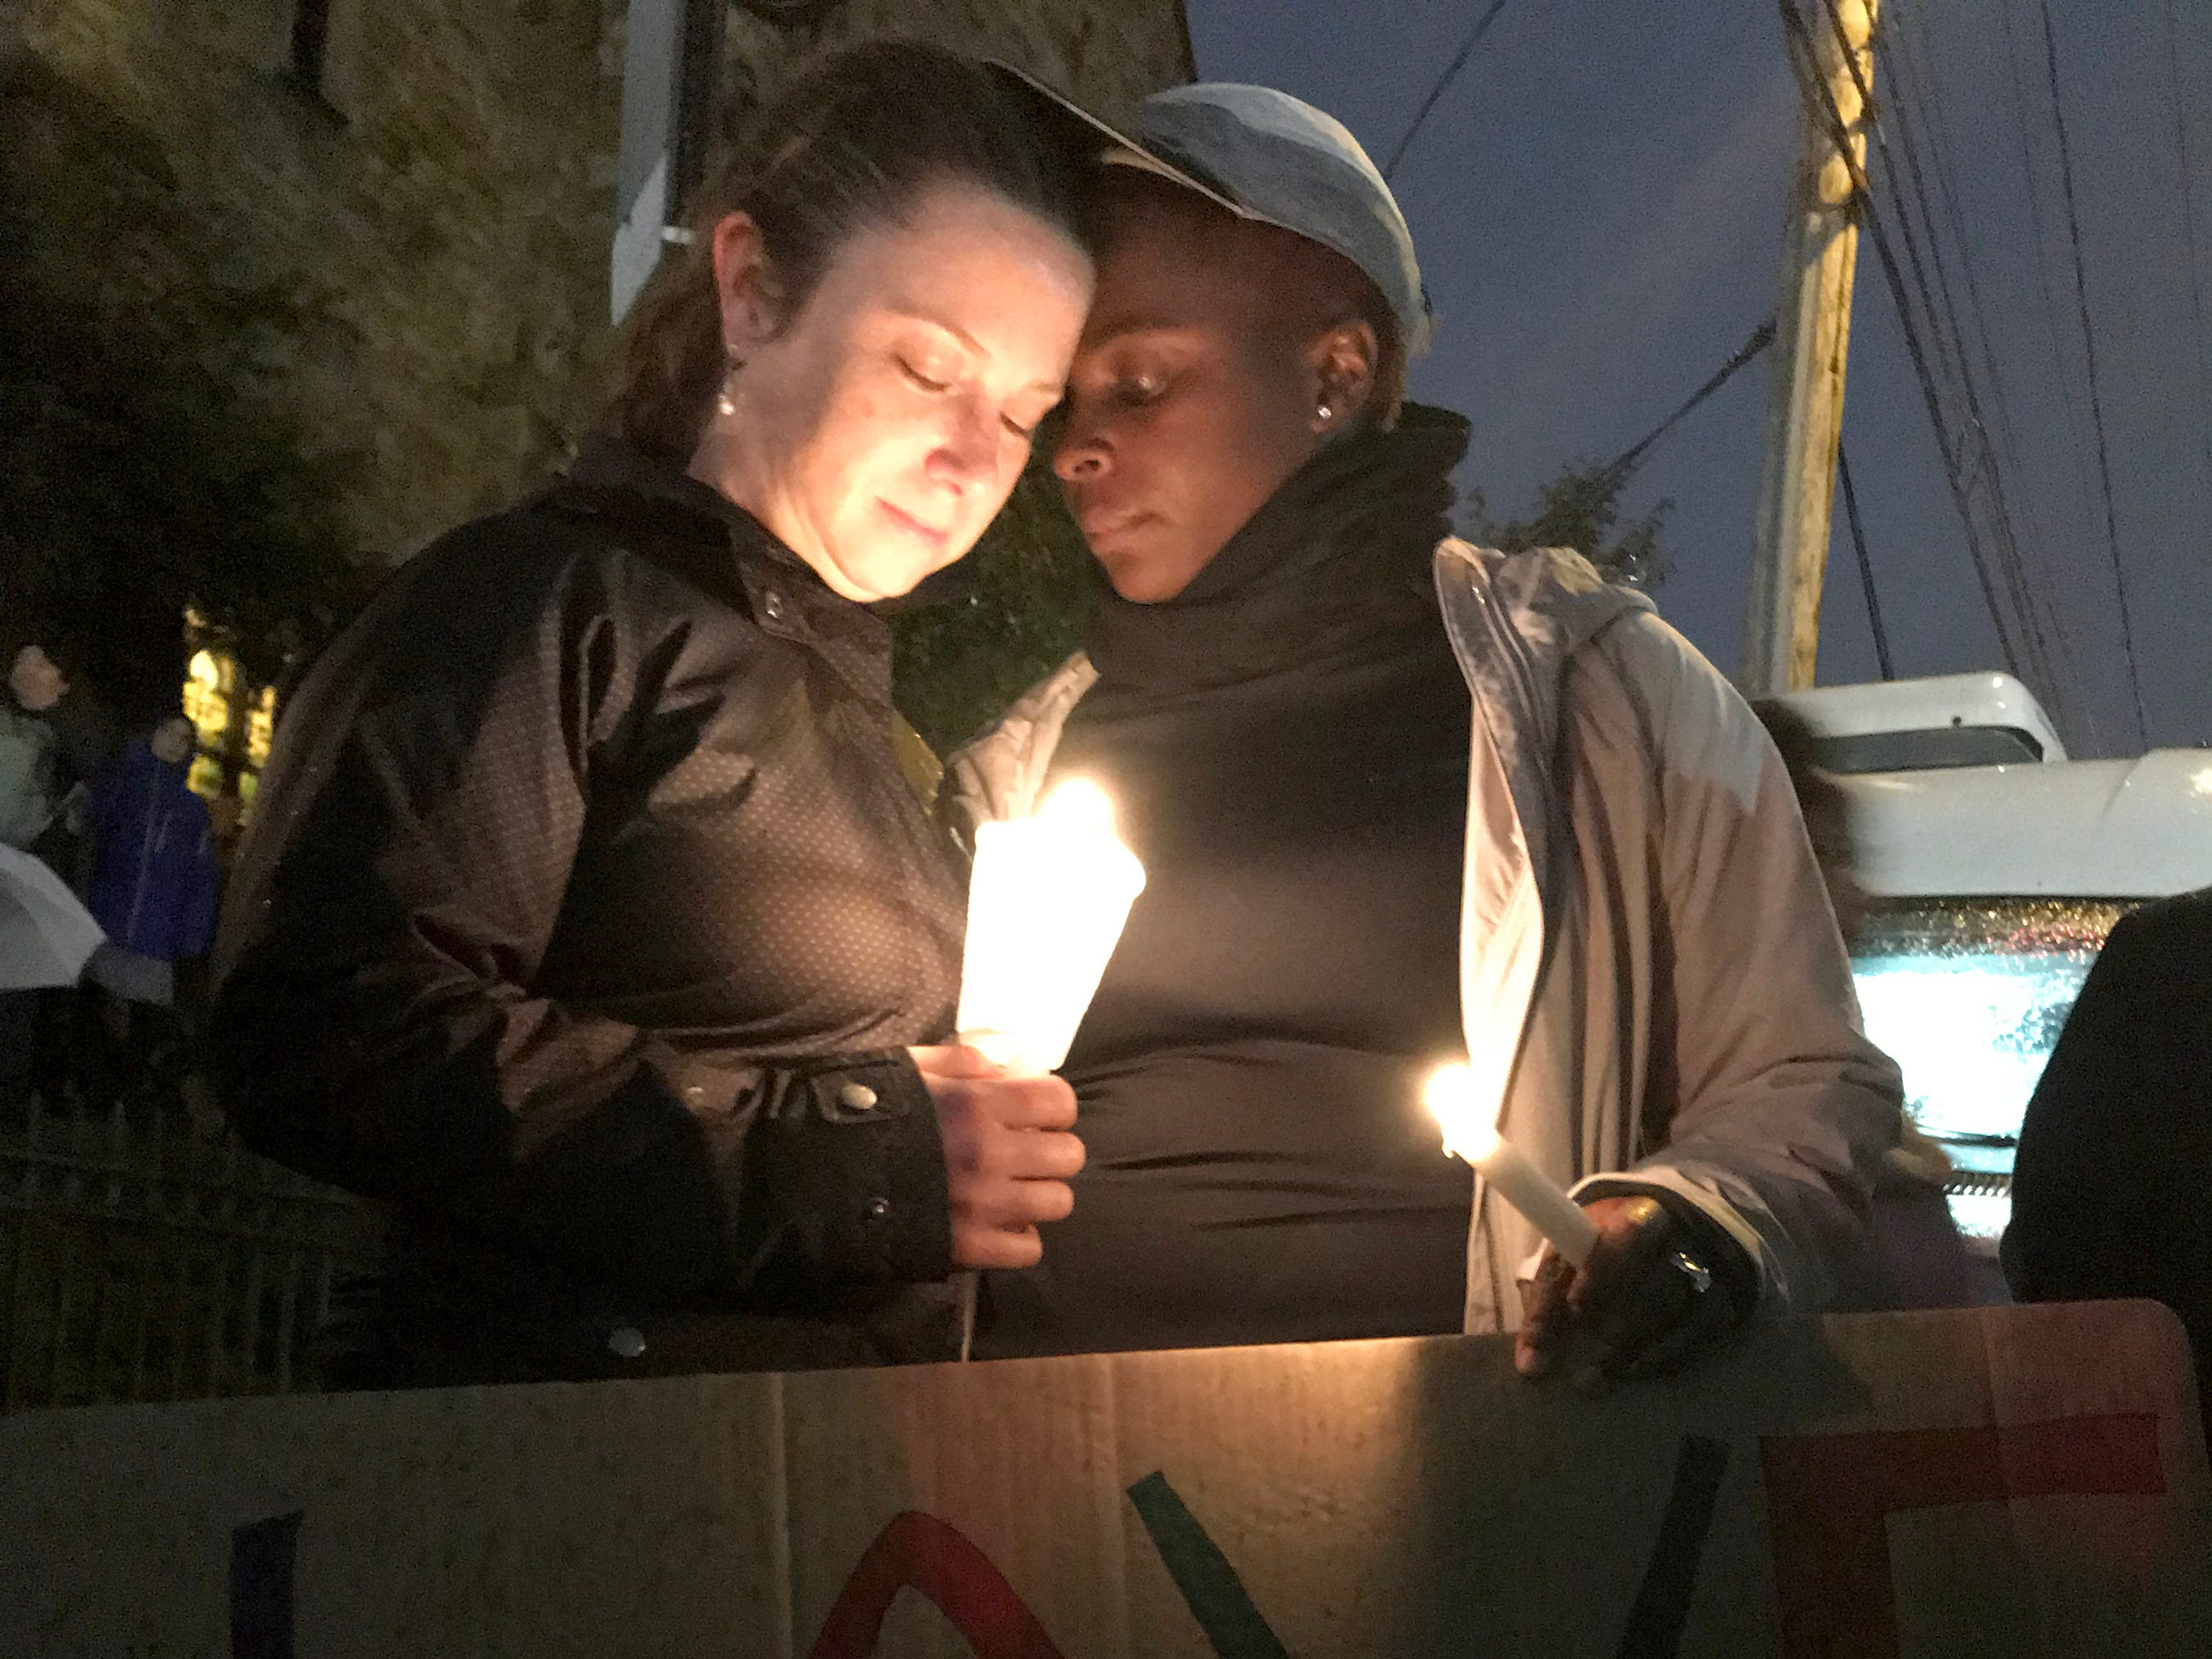 Amira Woodson, 39, left, and Alison Culyba, 39, attend a candle-light vigil in the Squirrel Hill neighborhood of Pittsburgh.